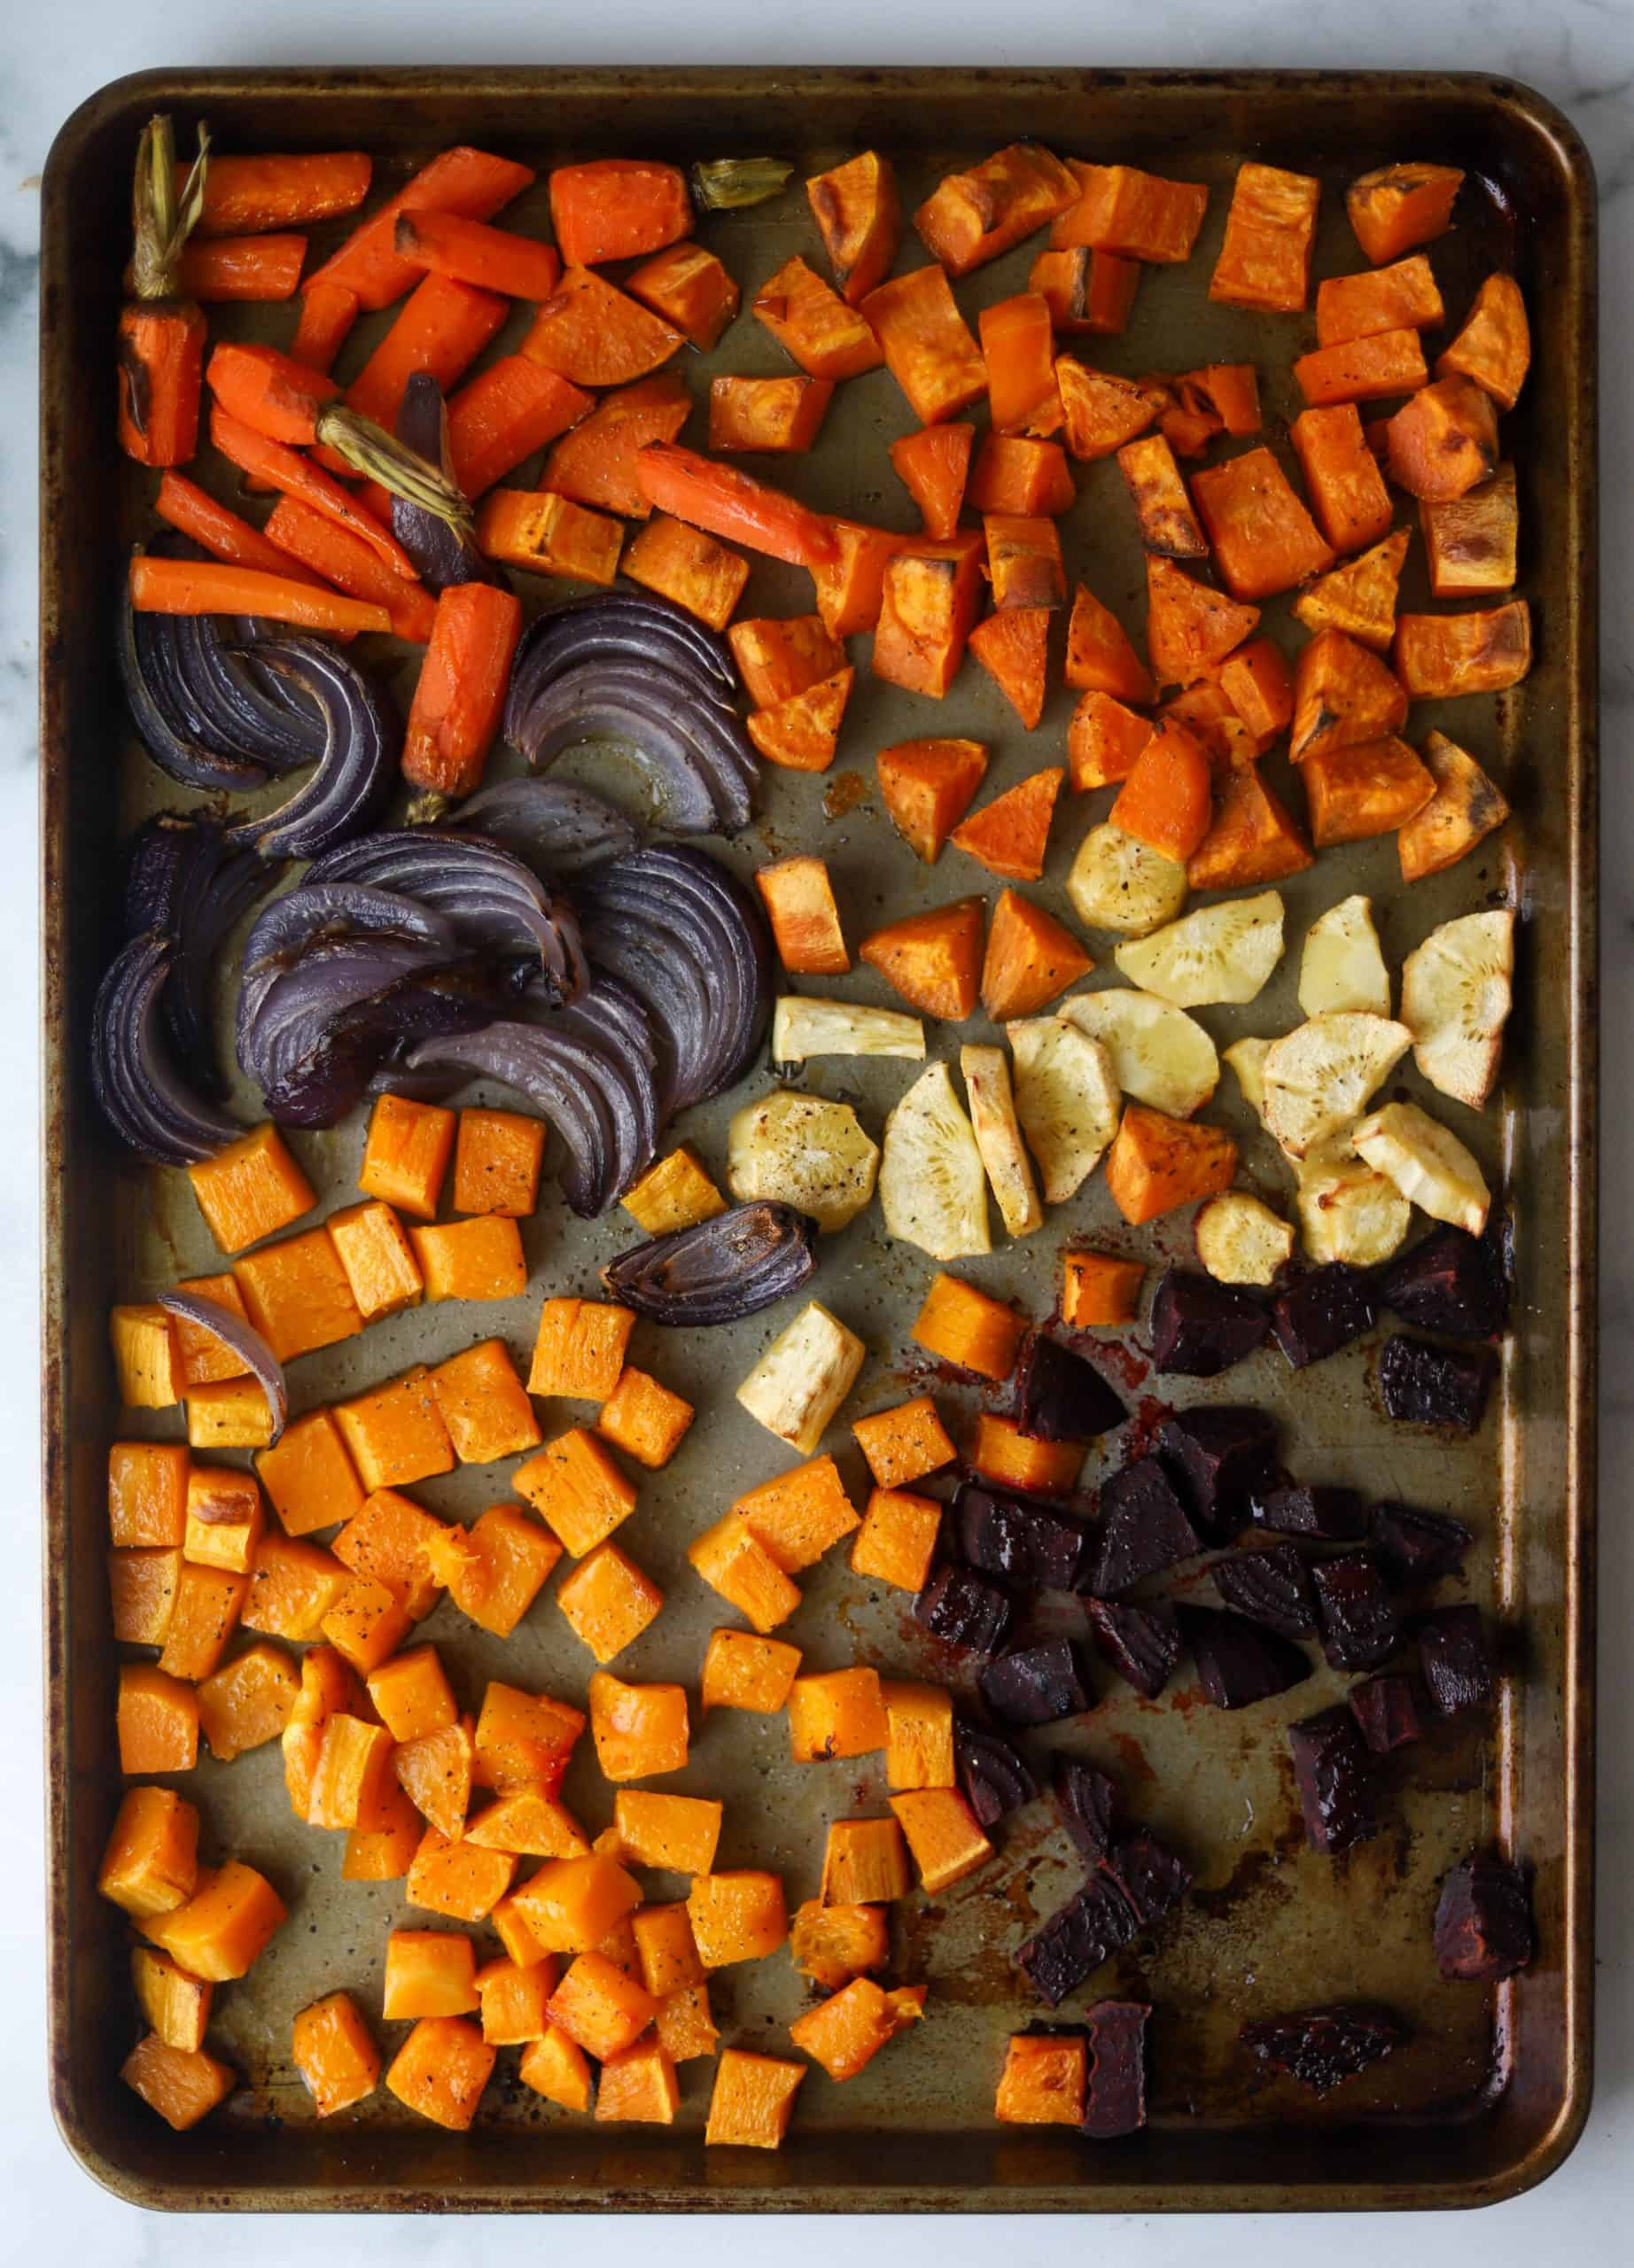 Chopped and roasted carrots, sweet potatoes, onions, parsnips, and beets  fresh out of the oven on a sheet pan.